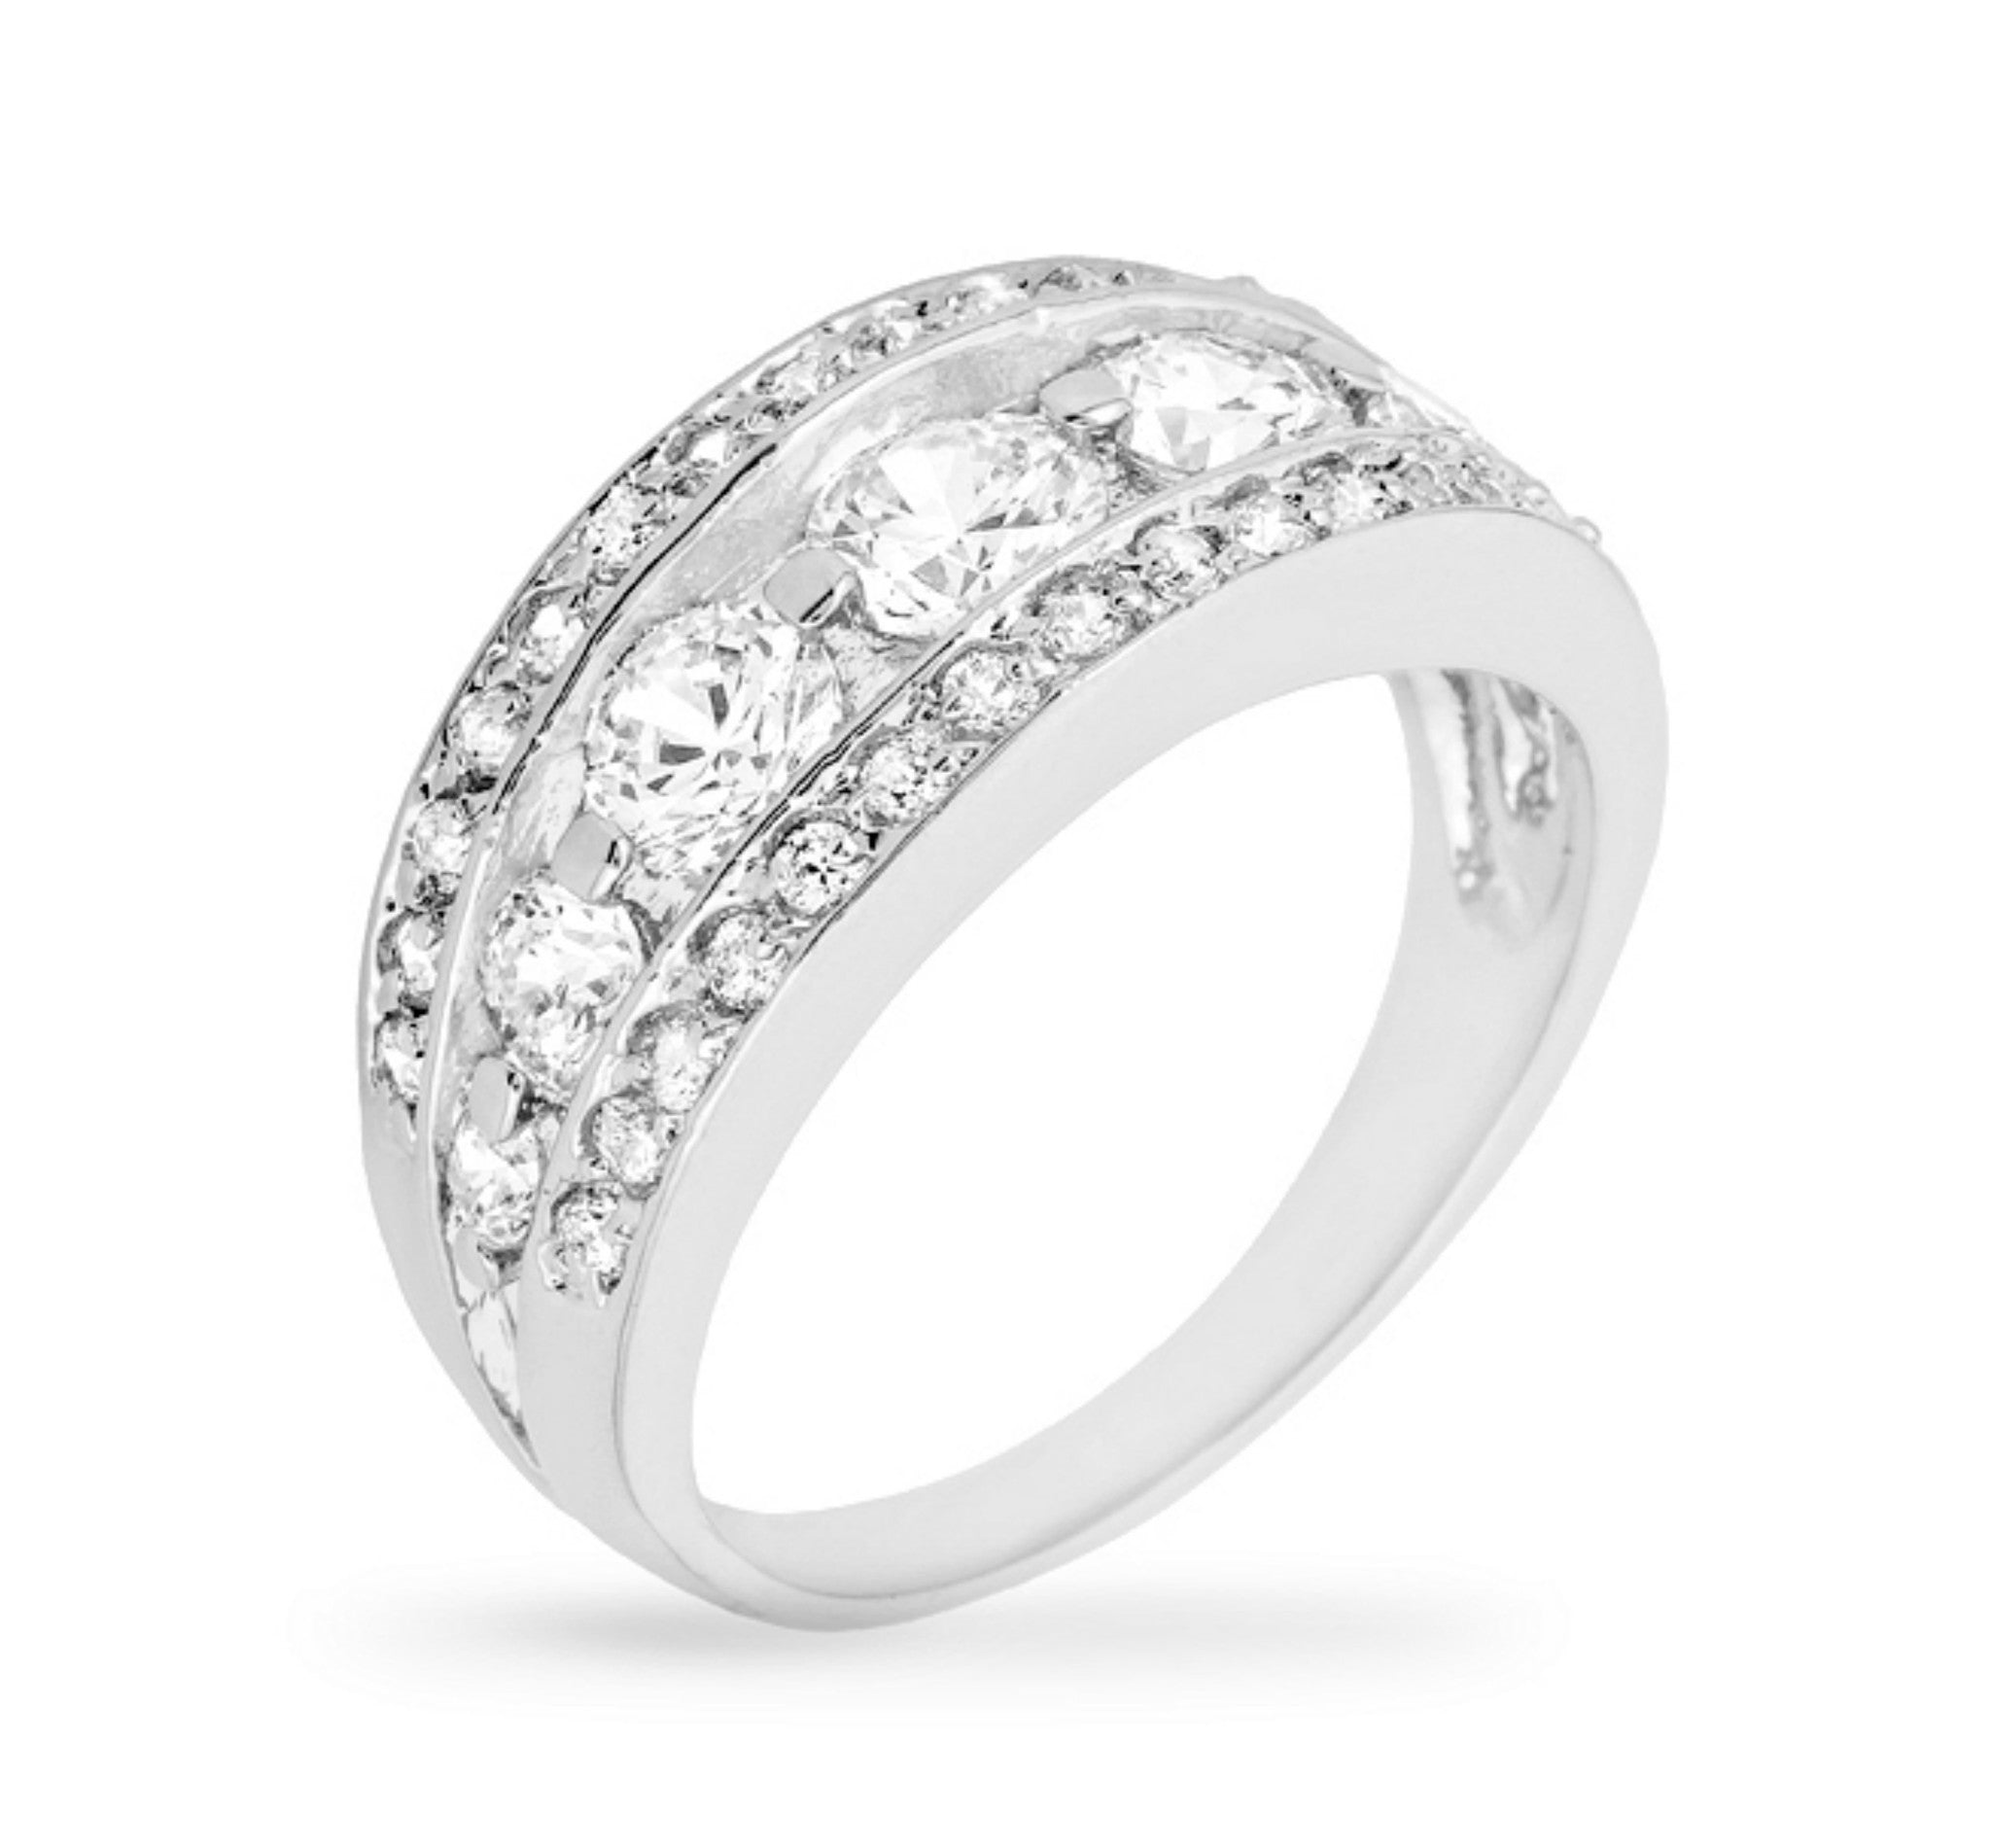 anaya rings collection diamond details jewellery product fine anniversary